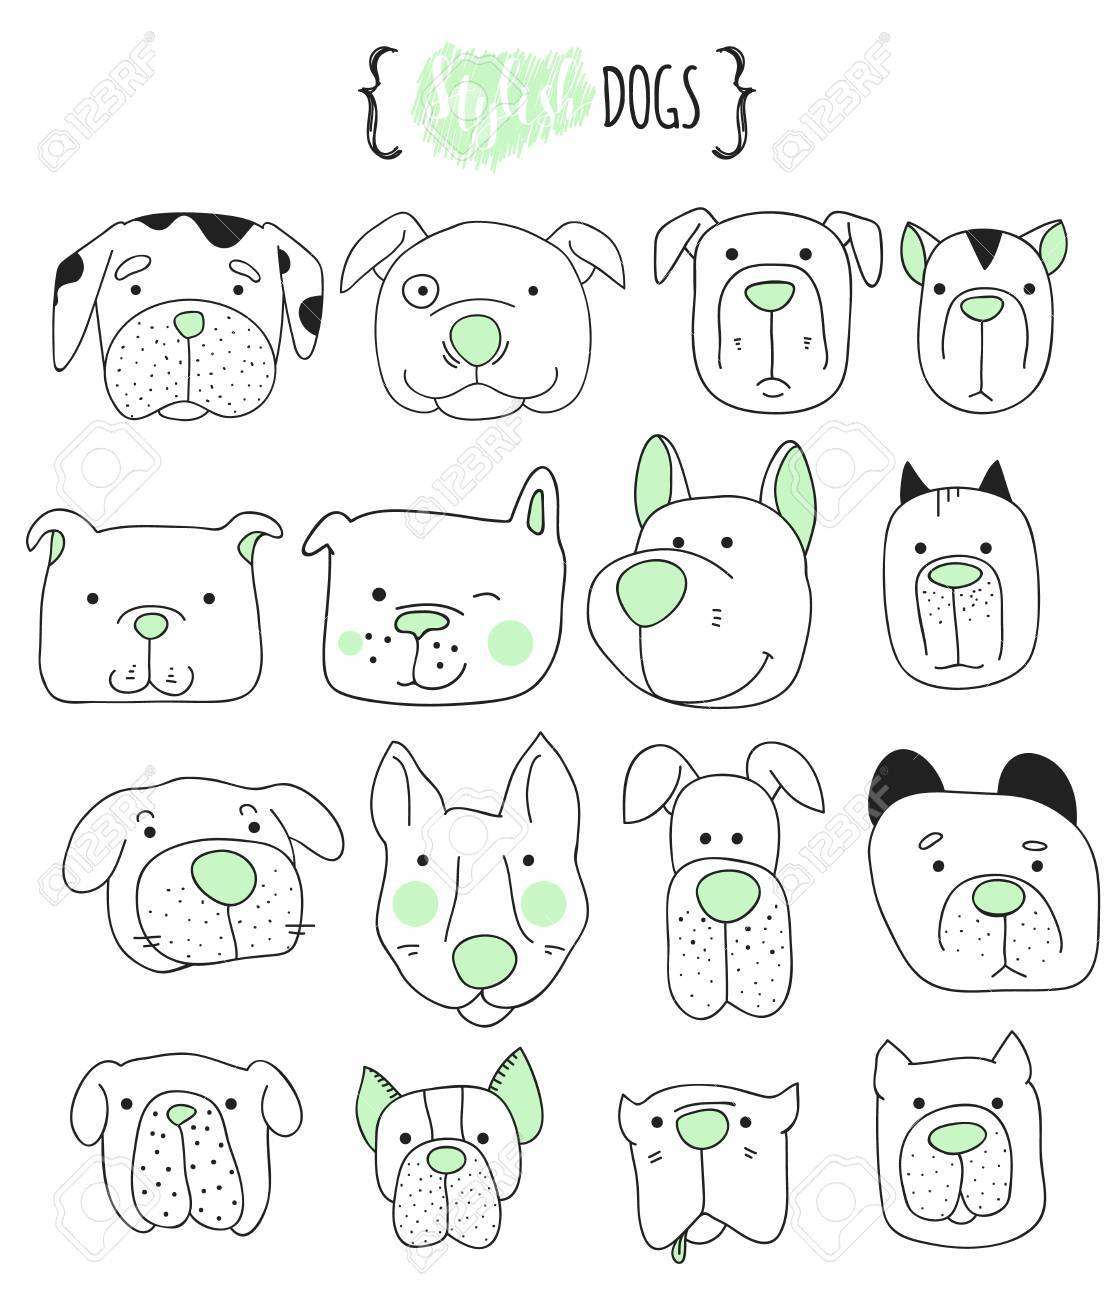 Set Of 16 Cute Dogs Doodle Sketch Dog Dog Handmade Dogs Royalty Free Cliparts Vectors And Stock Illustration Image 54197811